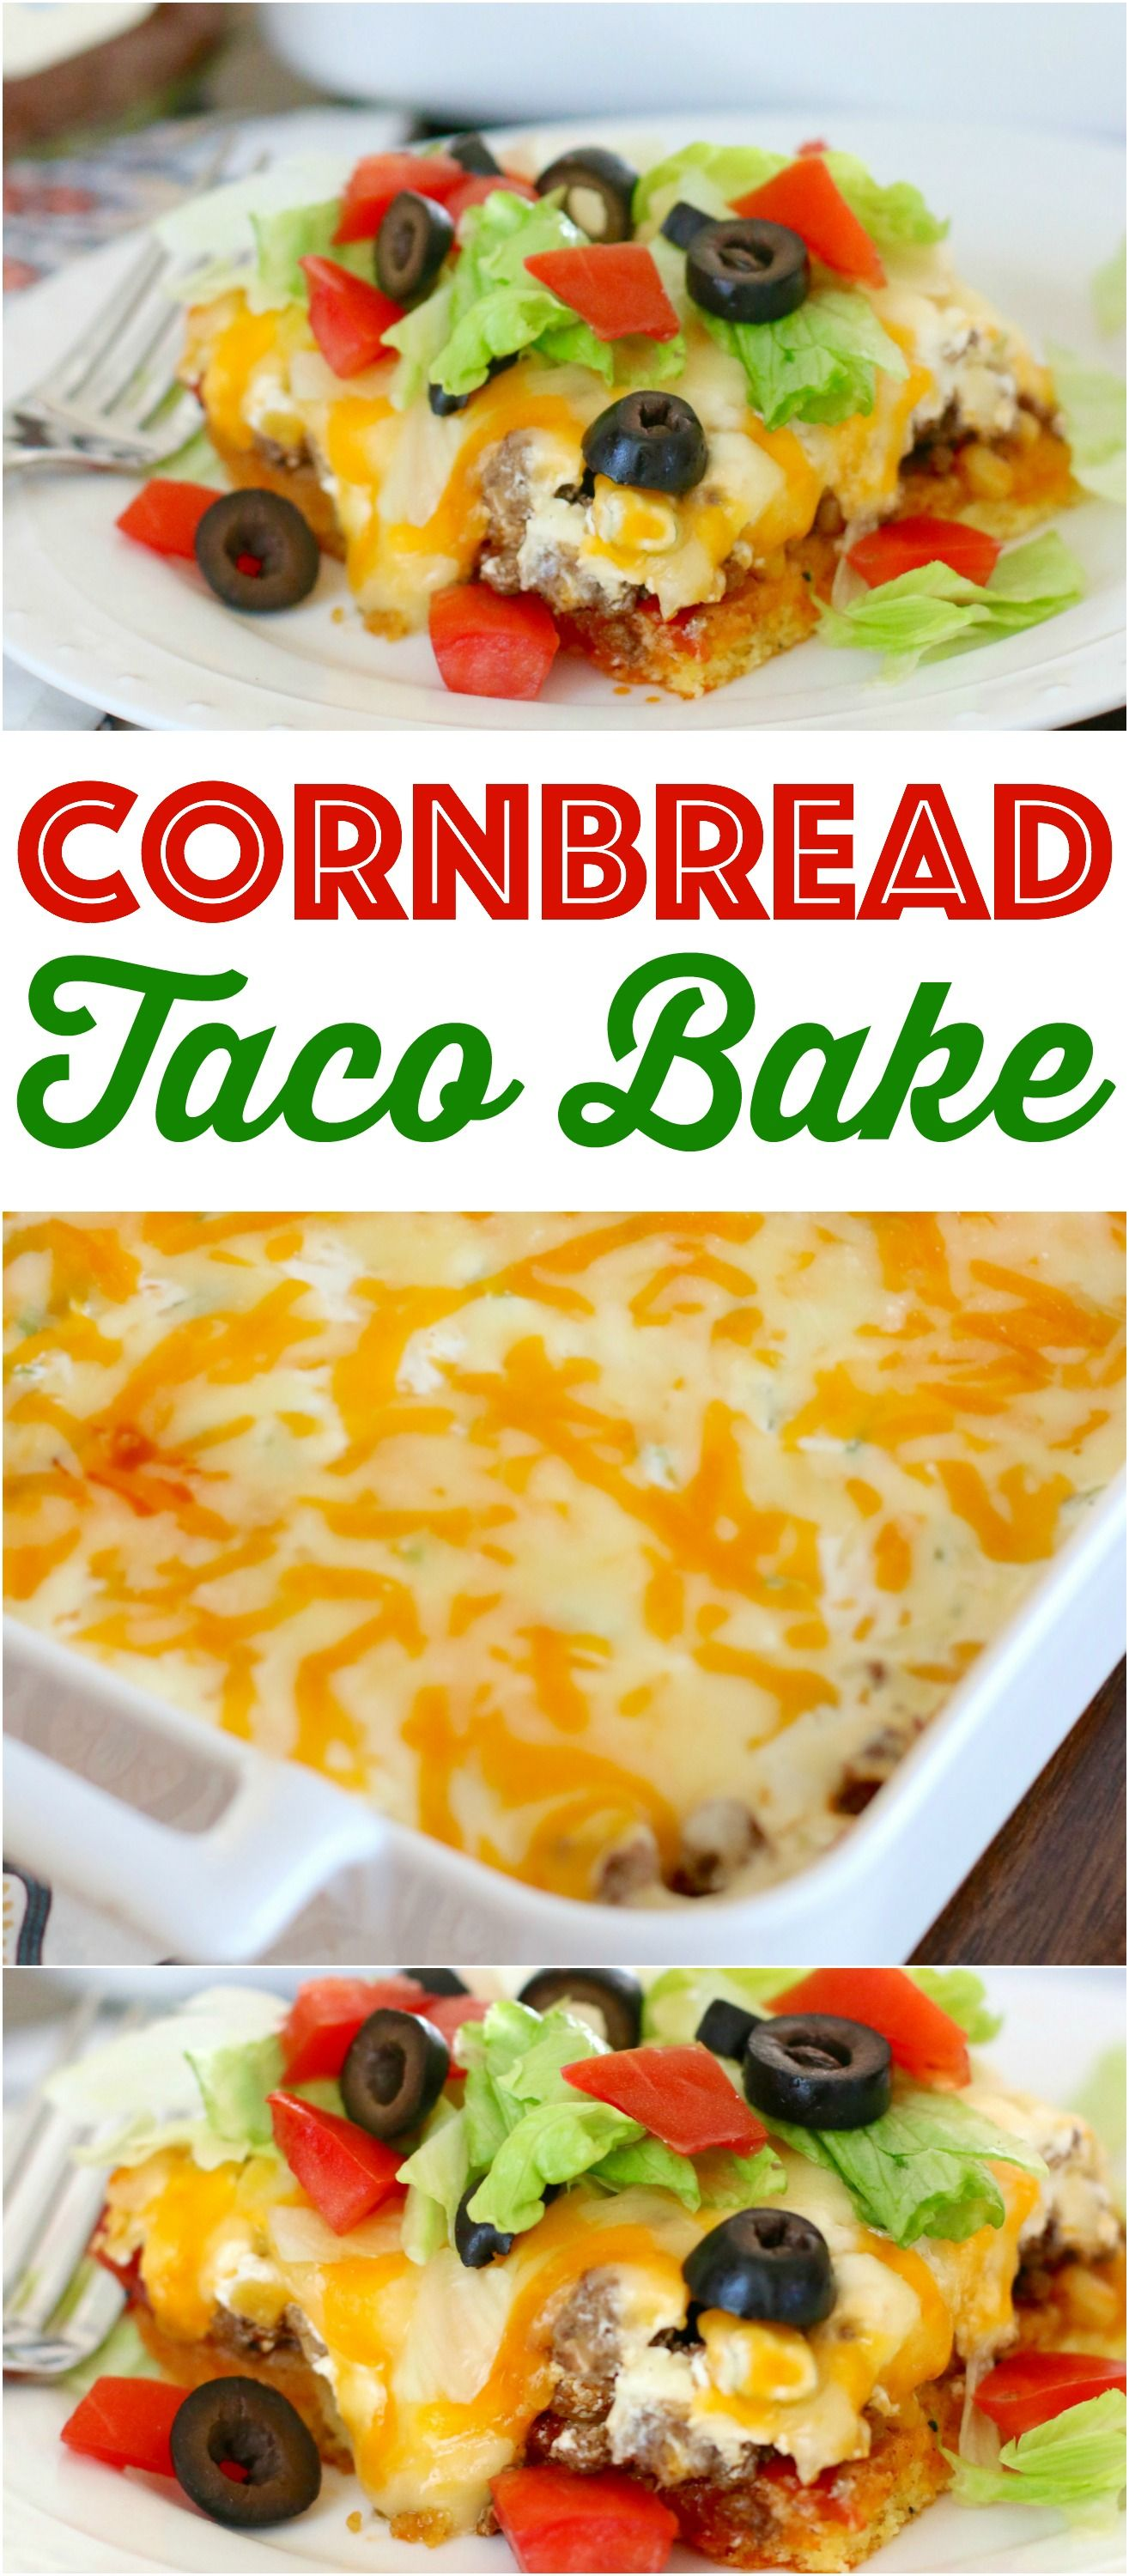 Easy Cornbread Taco Bake The Country Cook Recipe Recipes Mexican Food Recipes Food